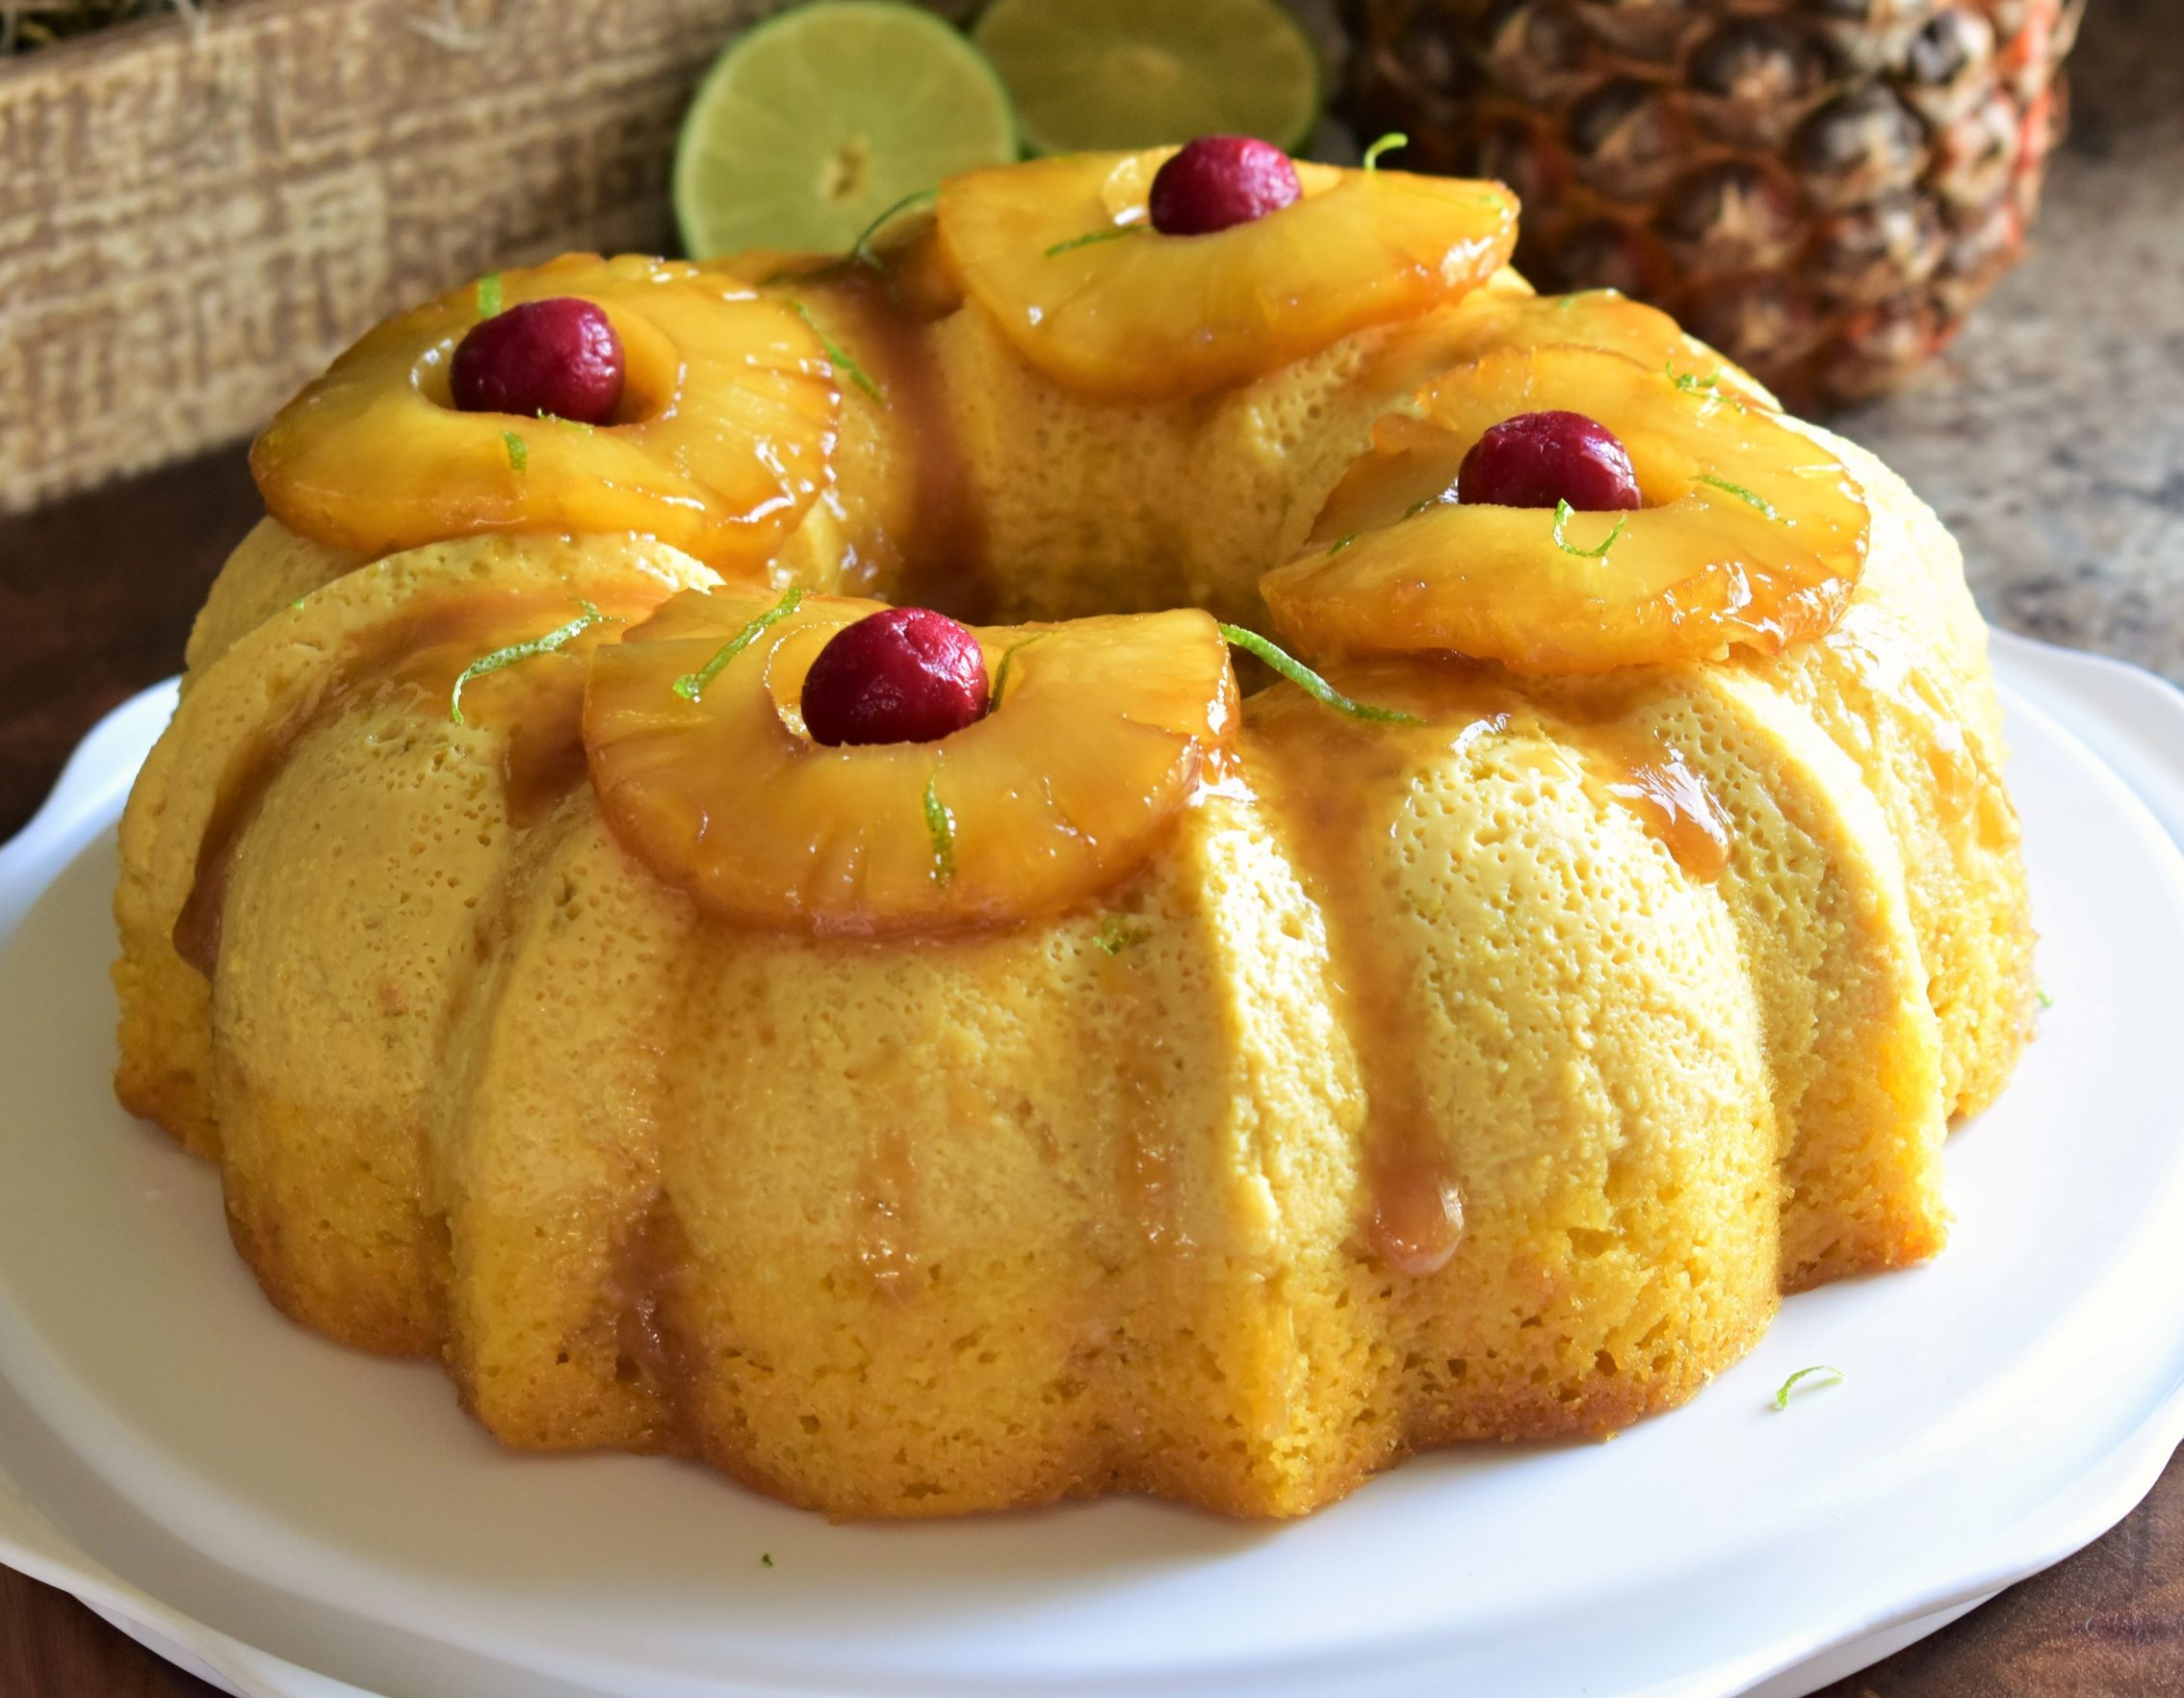 Pineapple-Lime Impossible Cake